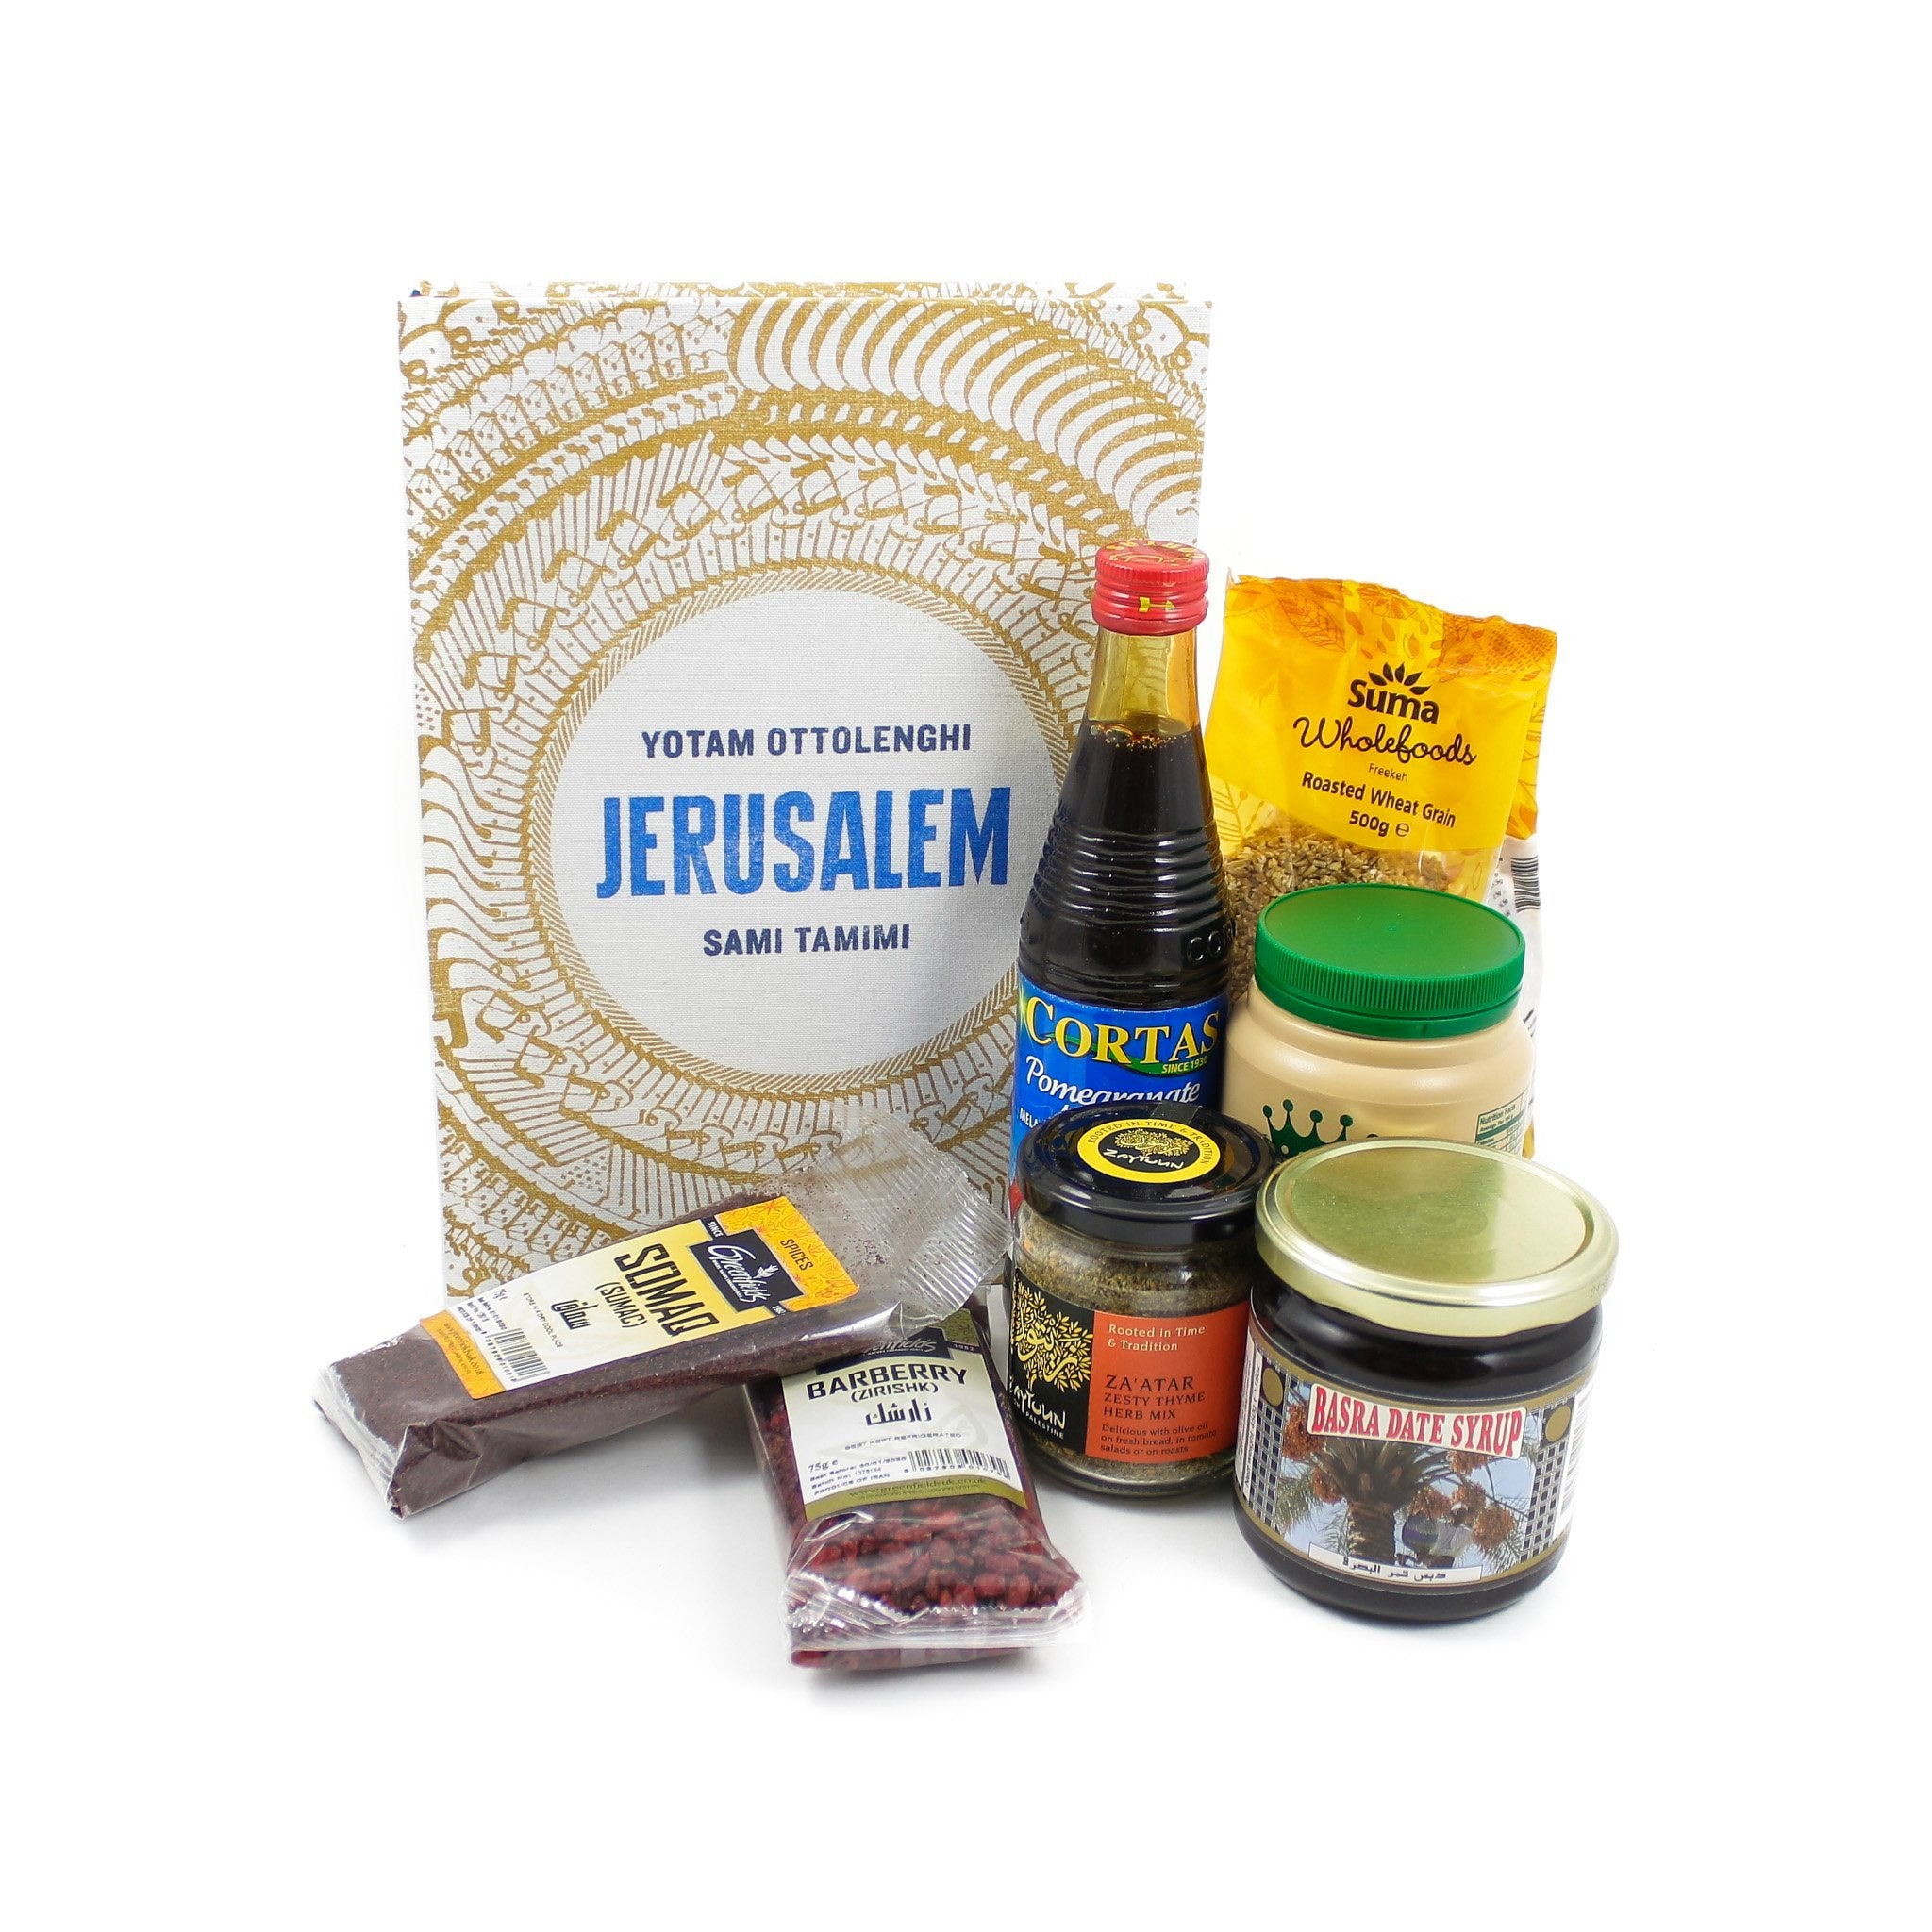 Sous Chef Kit Cookbook Set: Jerusalem Gifts Cookbook & Ingredients Sets